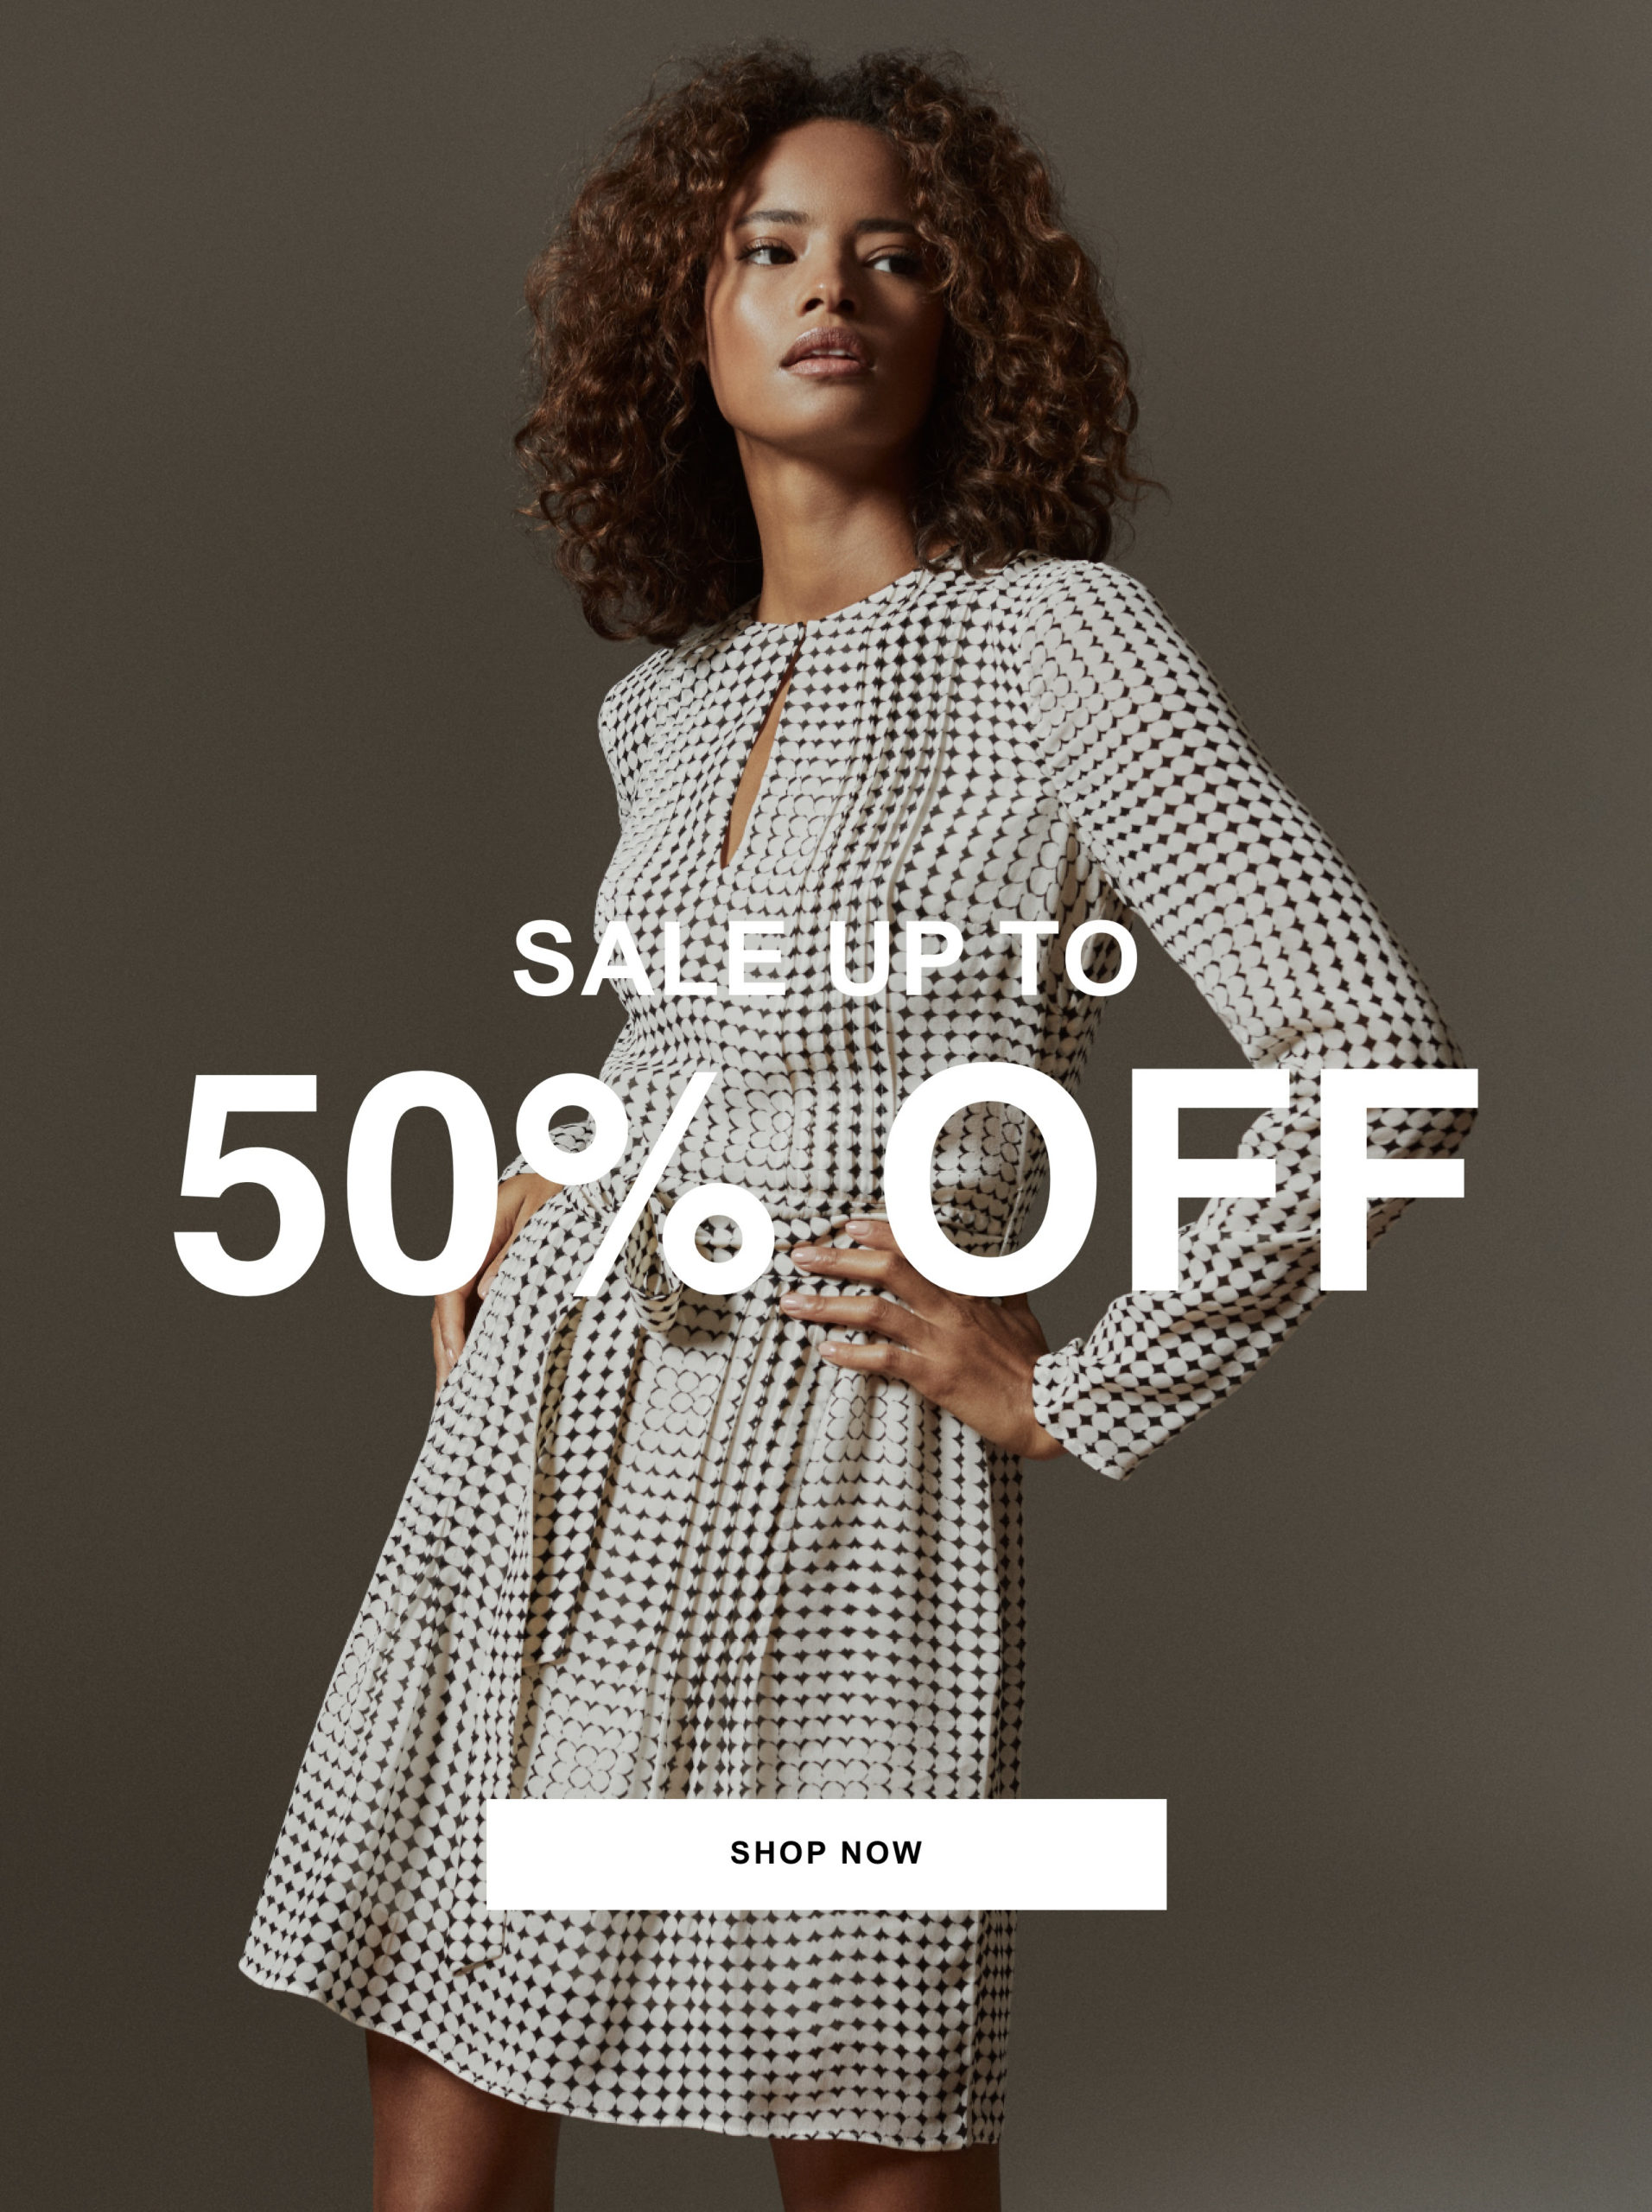 REISS - Best Of Sale: What To Shop Now